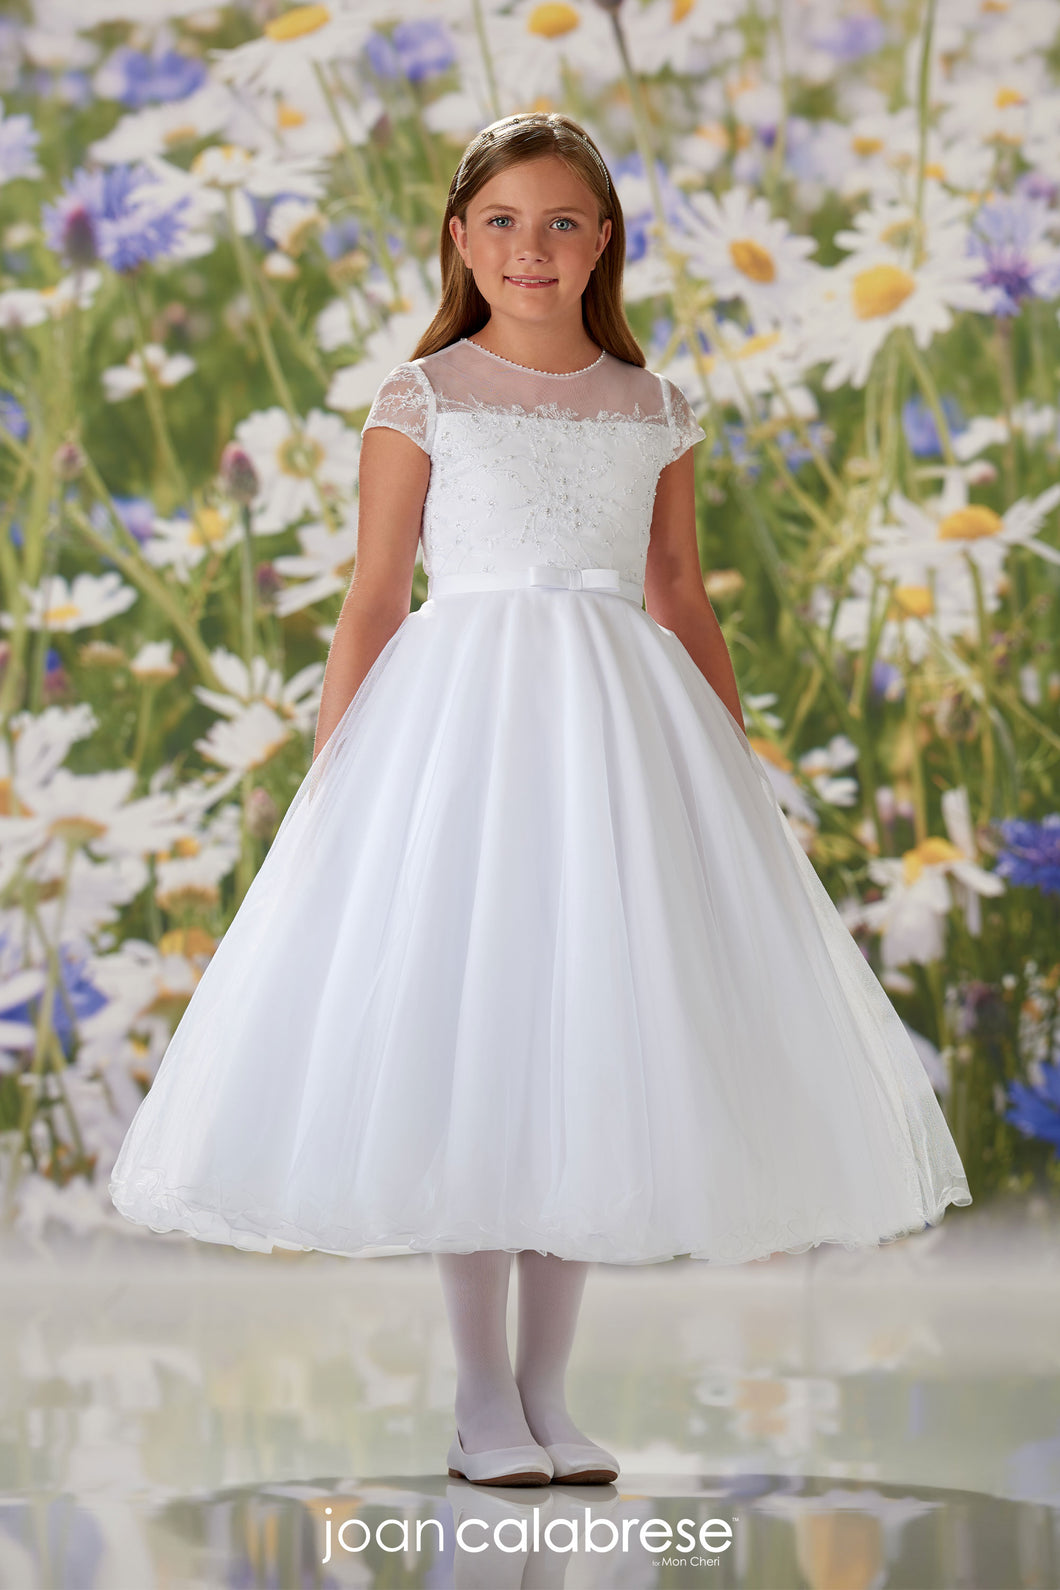 120335 Joan Calabrese Communion/Flower Girl Dress Size 8